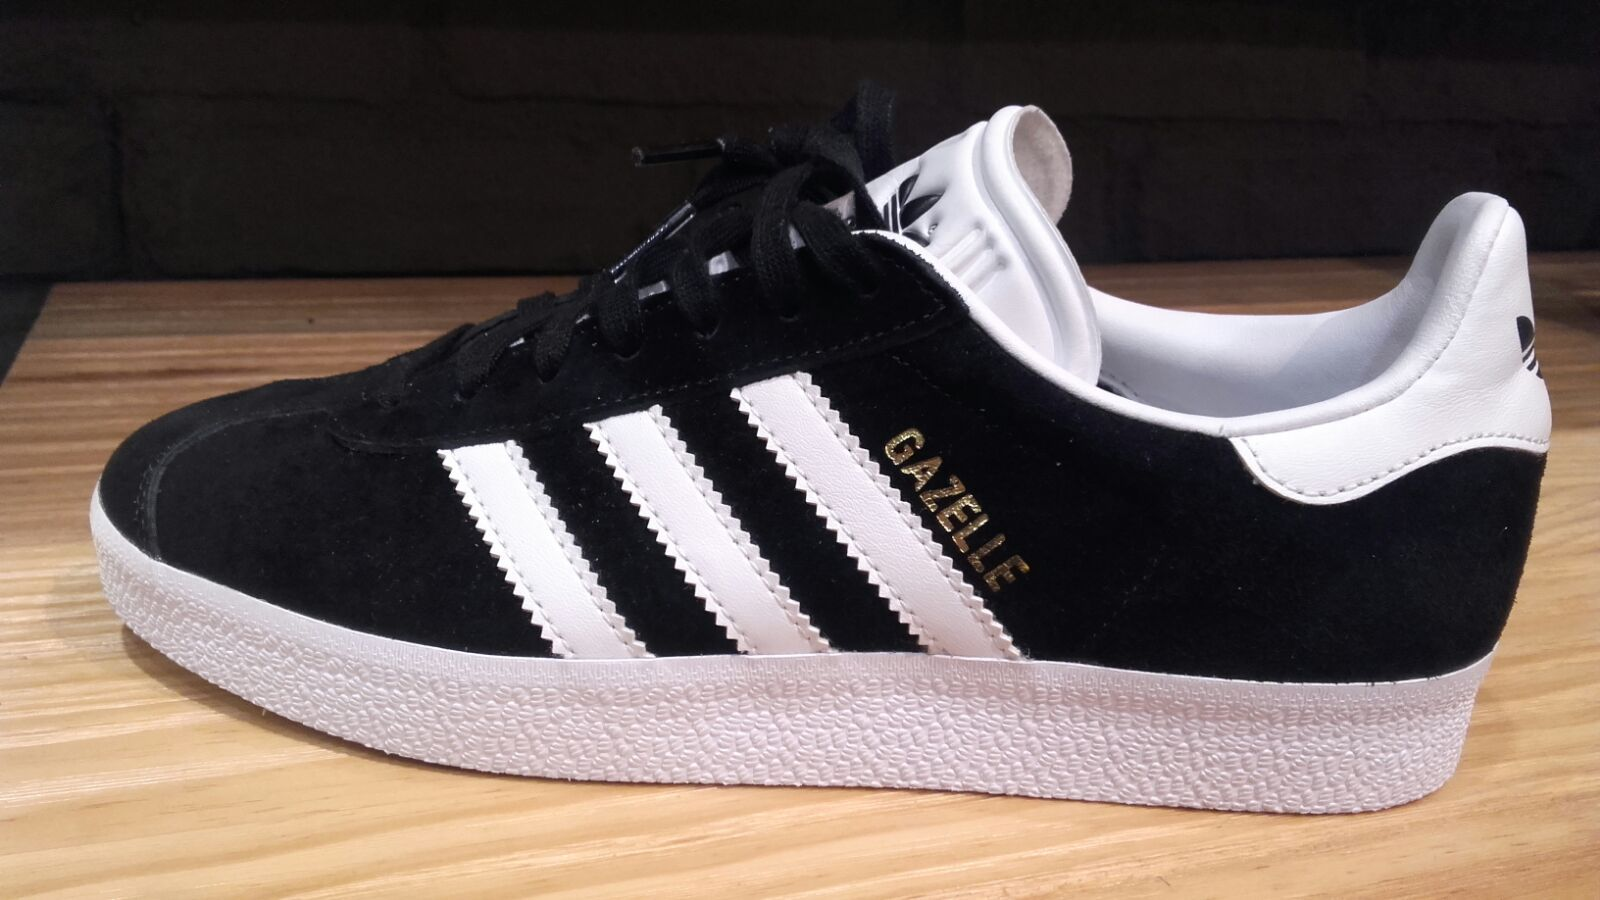 Adidas Gazelle. Available sizes 36 until 44. Price €60 and shipping costs